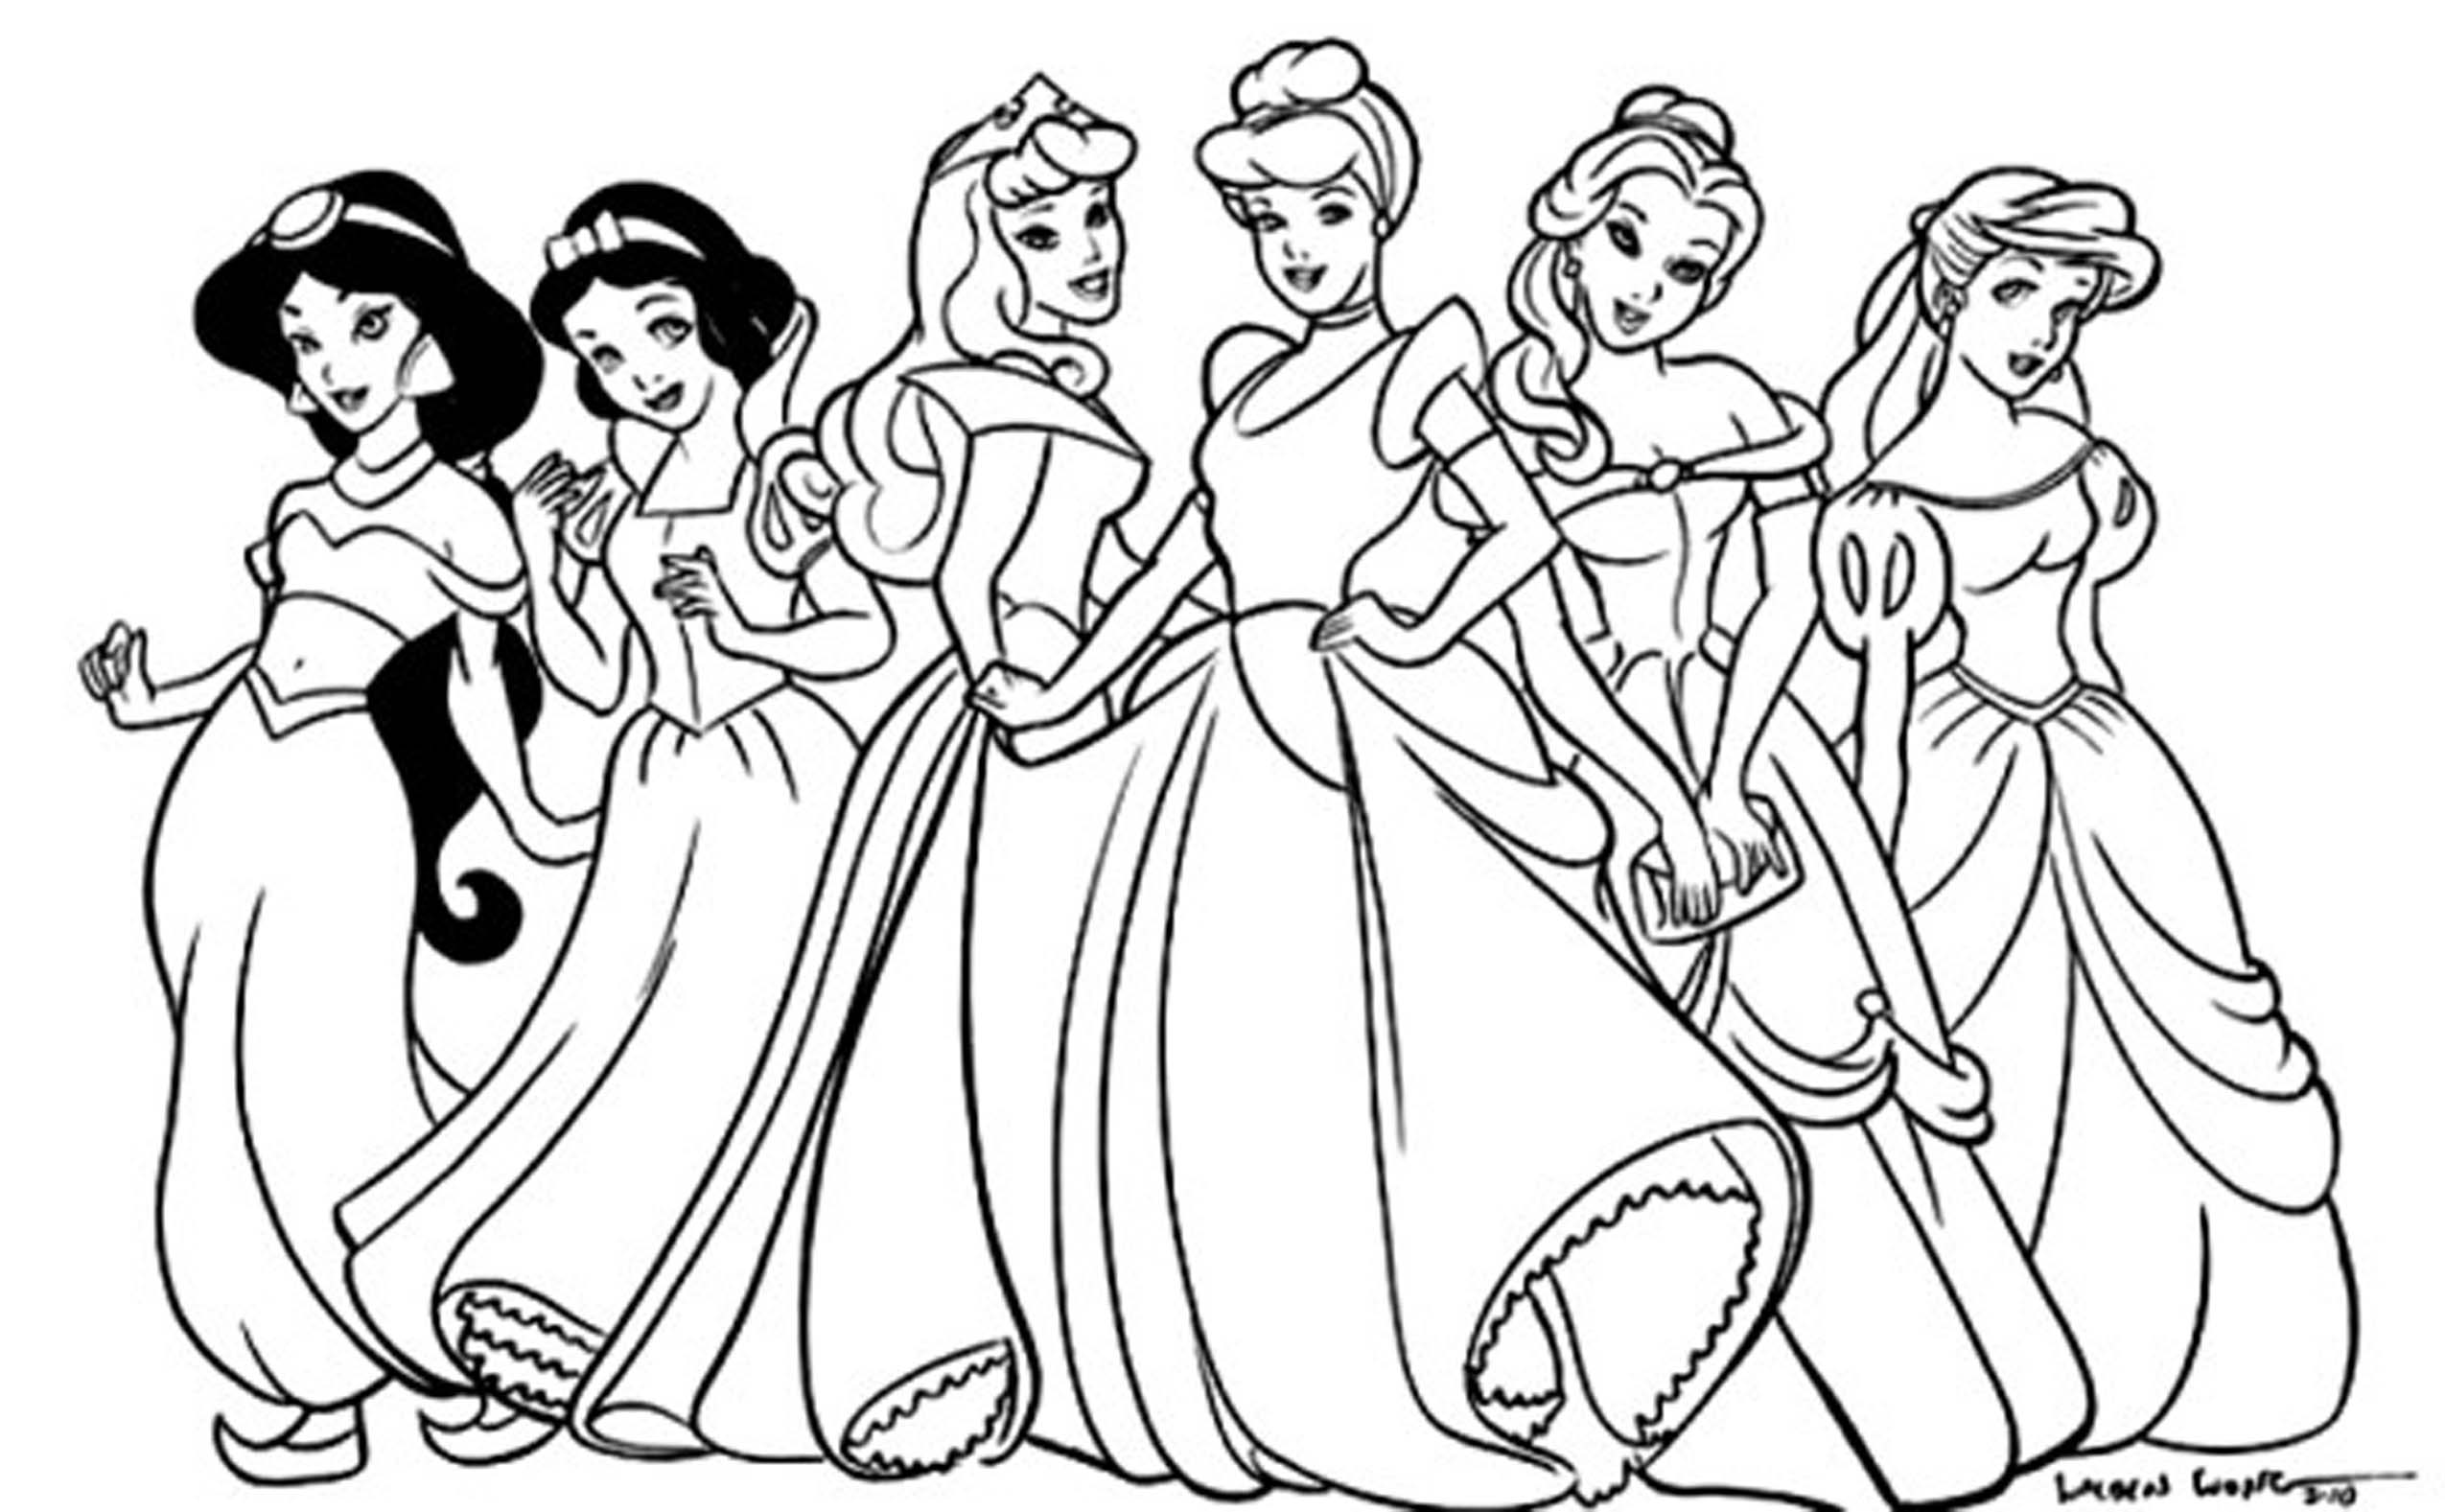 disney-princess-coloring-pages | | BestAppsForKids.com